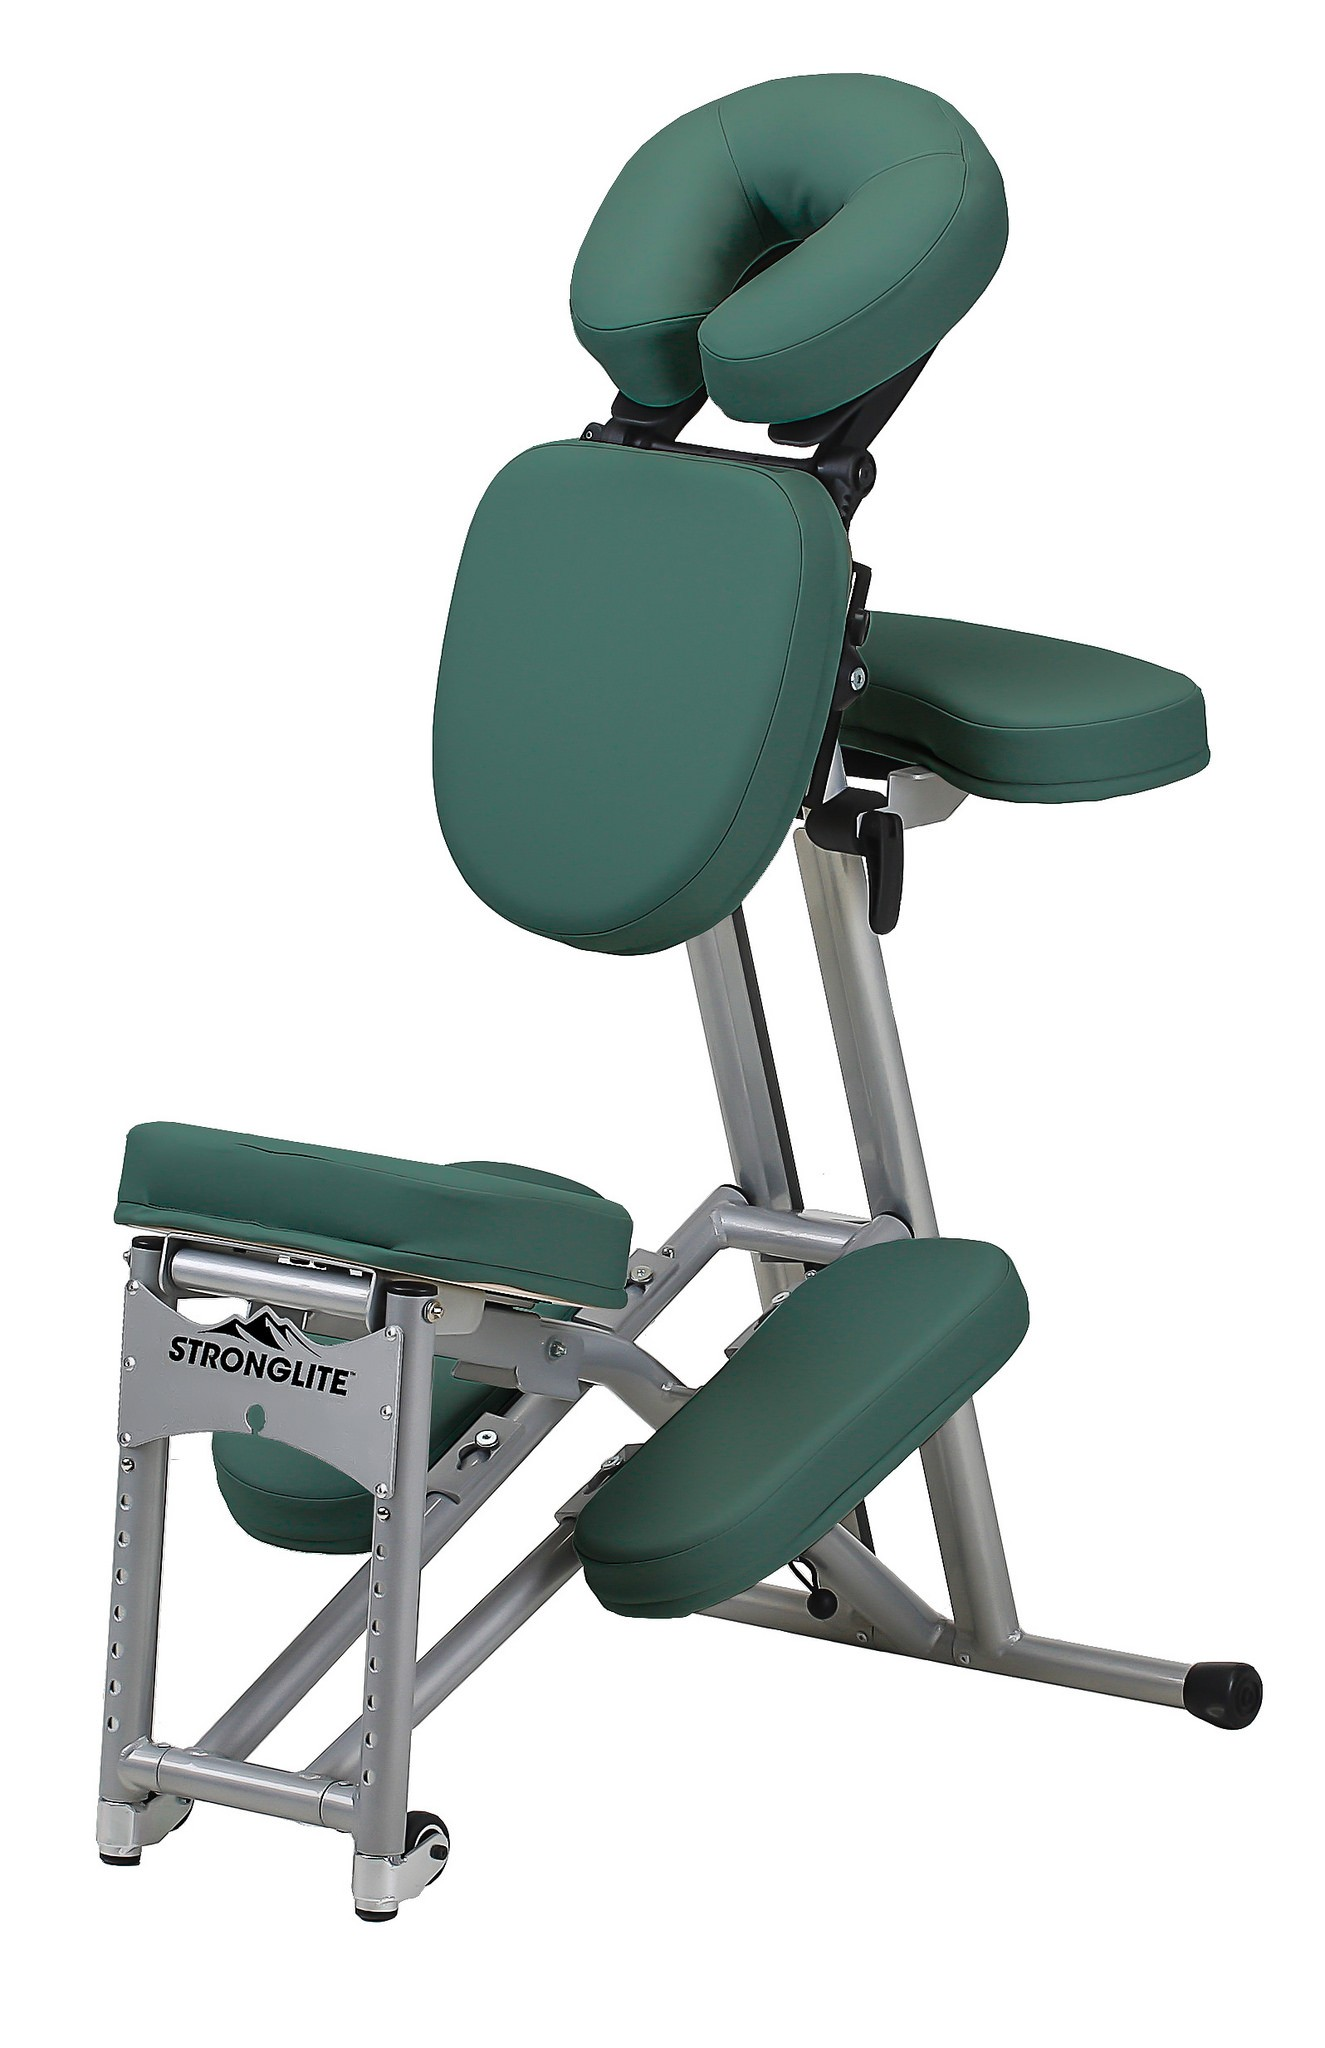 Stronglite Ergo Pro 2 Massage Chair Package